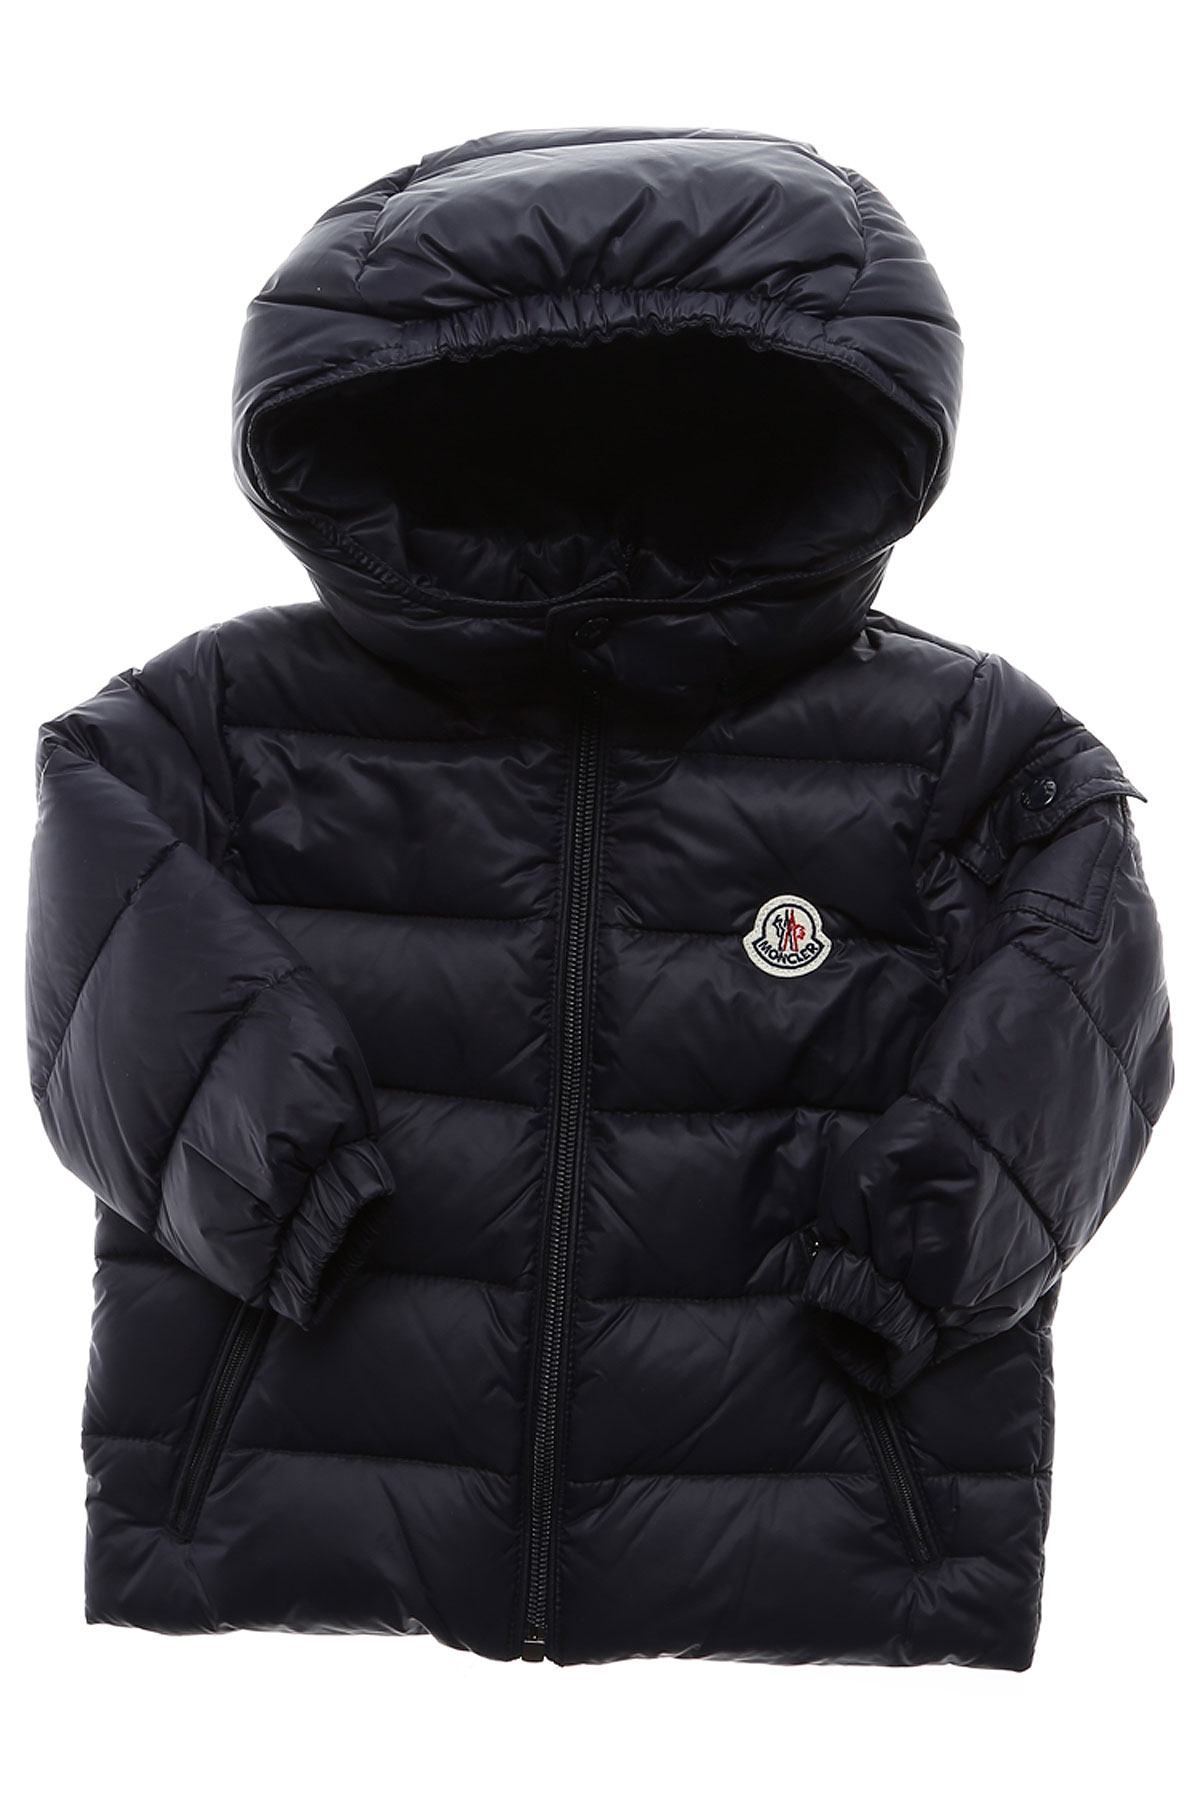 168370f4ad77 Baby Boy Clothing Moncler